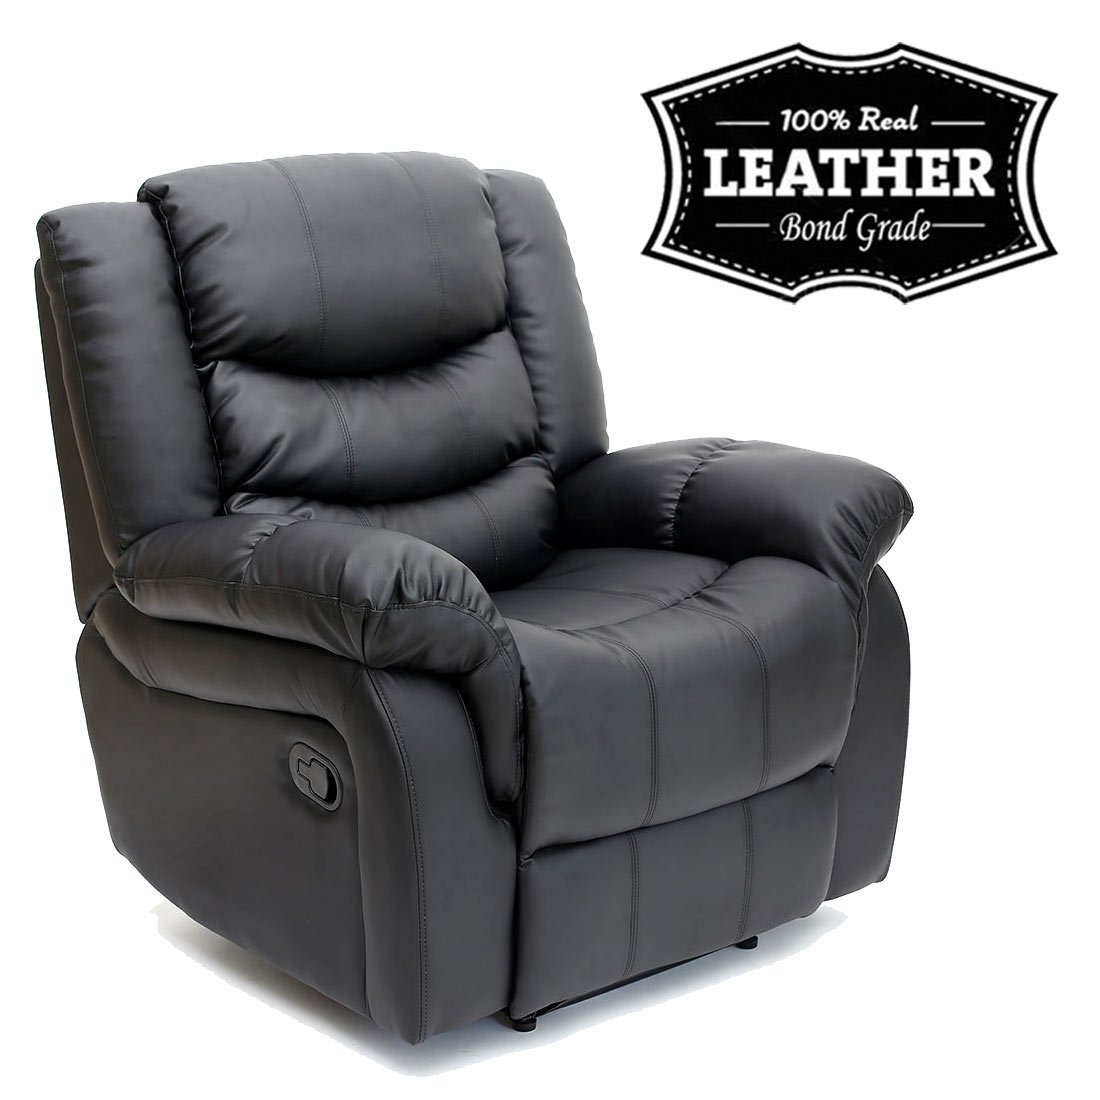 SEATTLE LEATHER RECLINER ARMCHAIR